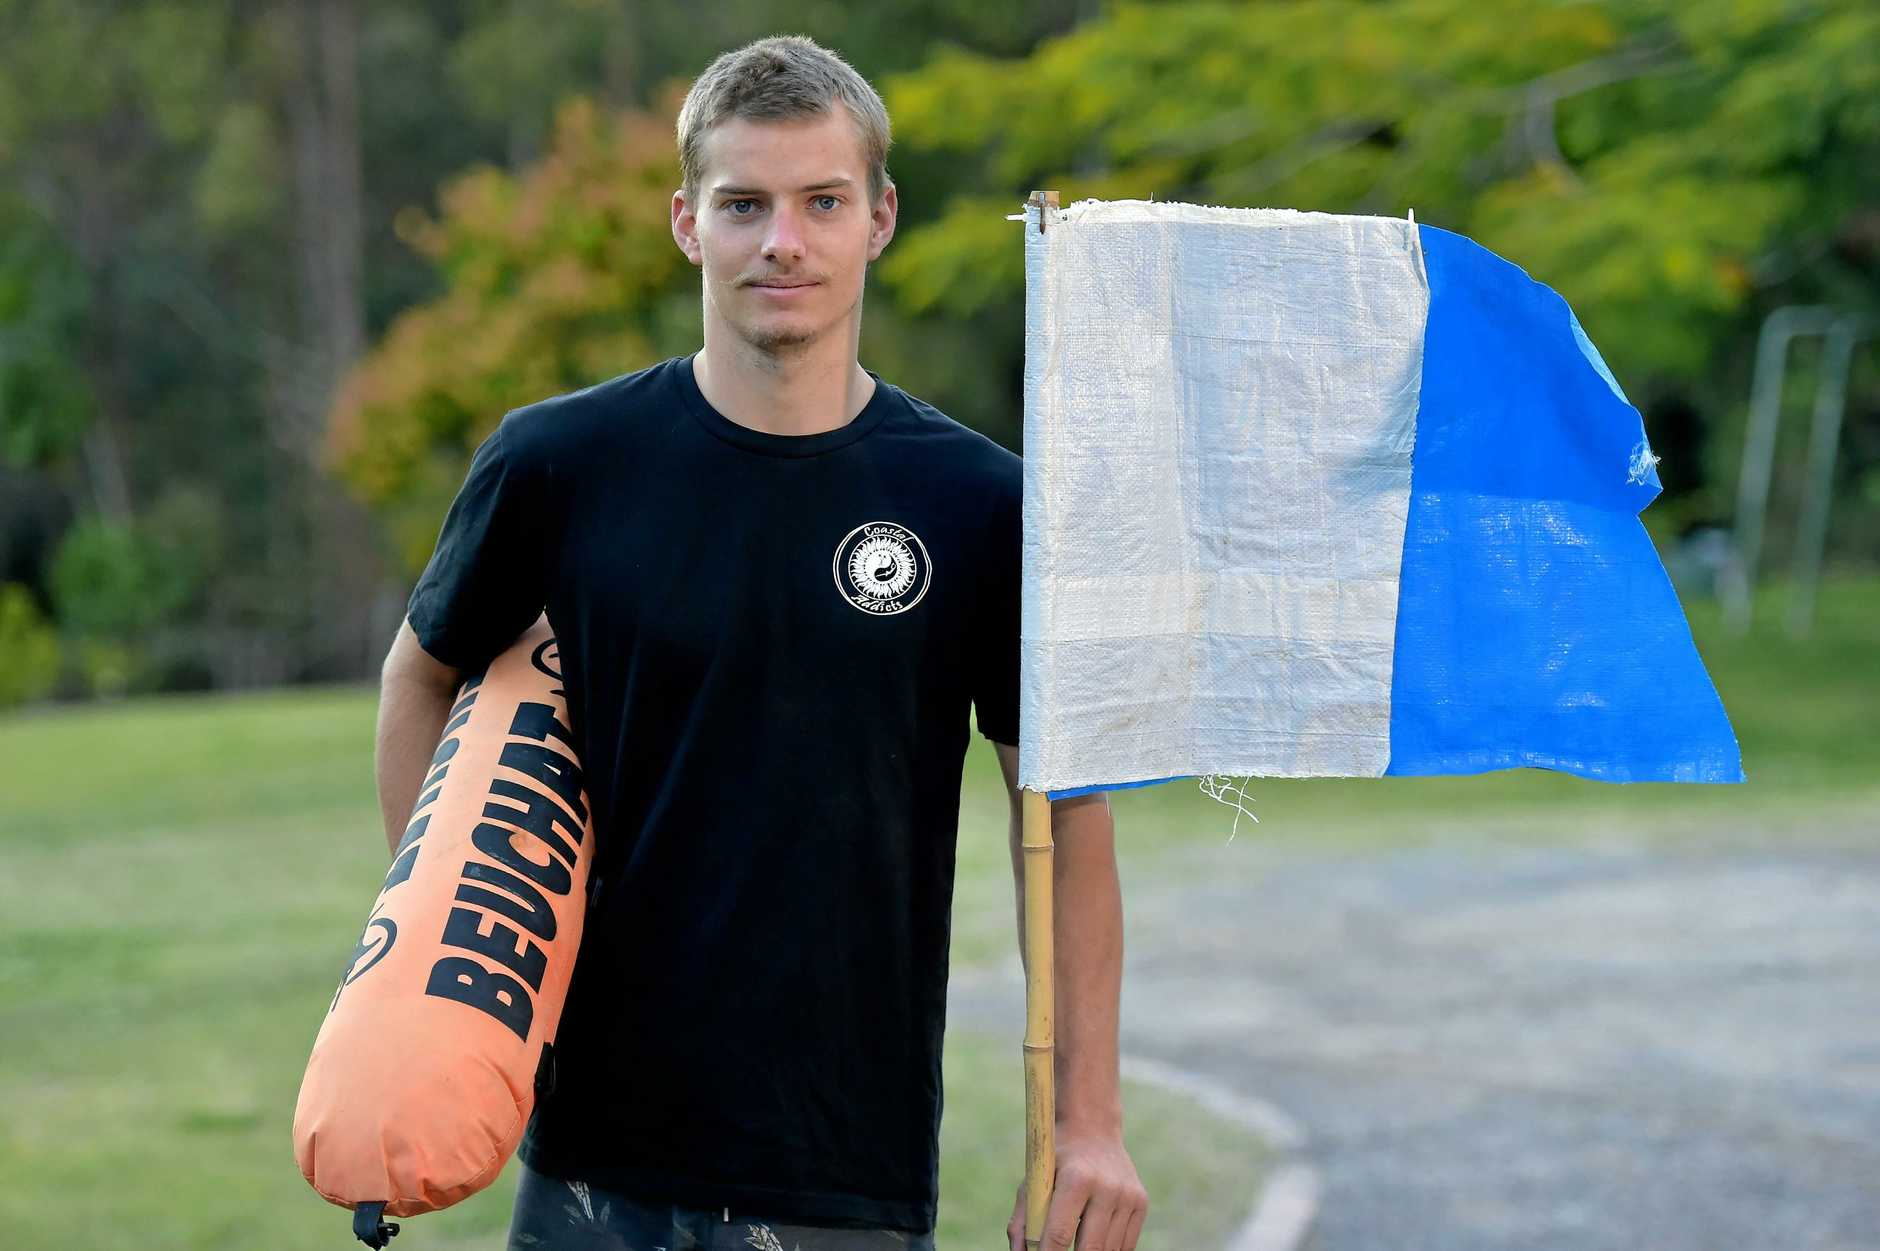 SPREAD THE WORD: Harry Rahn, 21, was hit by a jet ski while diving at Old Woman Island and is warning other water users to be careful. He is pictured with the diving flag he always displays.